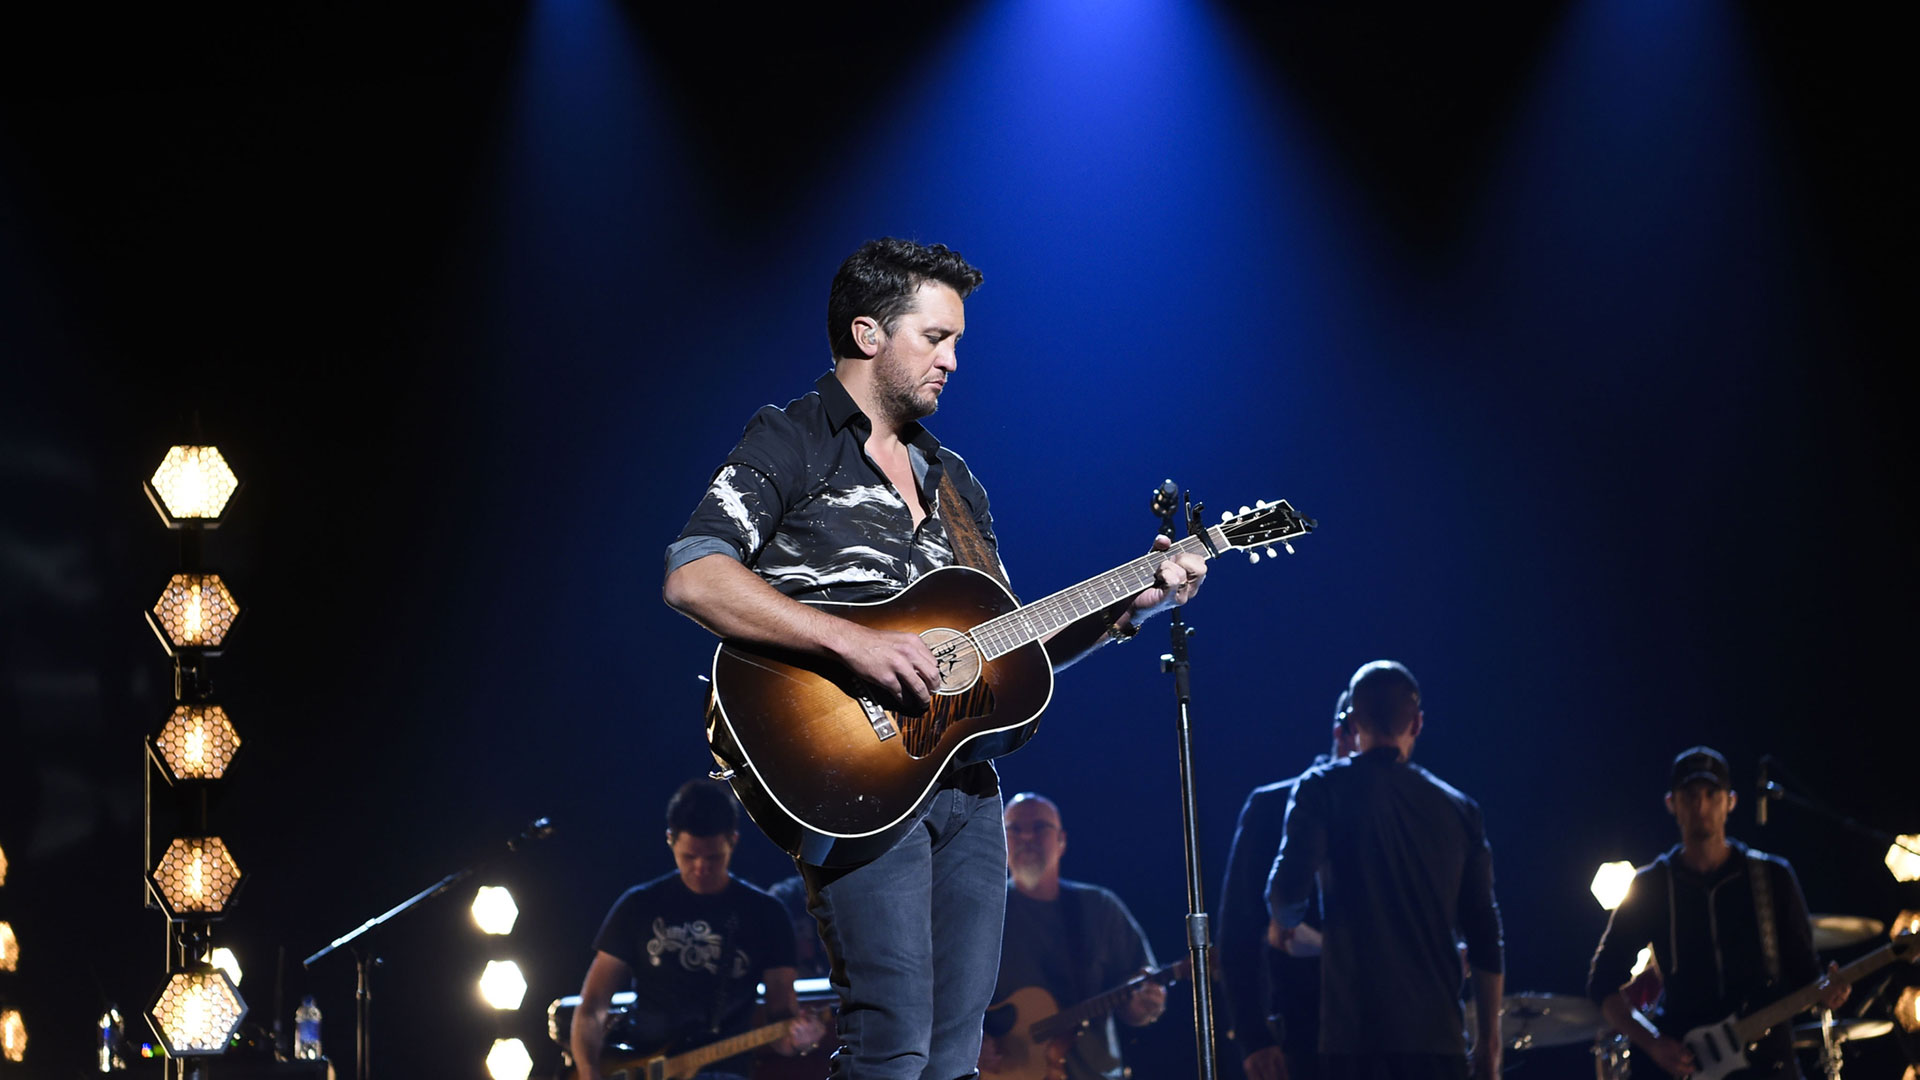 Luke Bryan jams out with his band during his rehearsal for the 53rd ACM Awards.